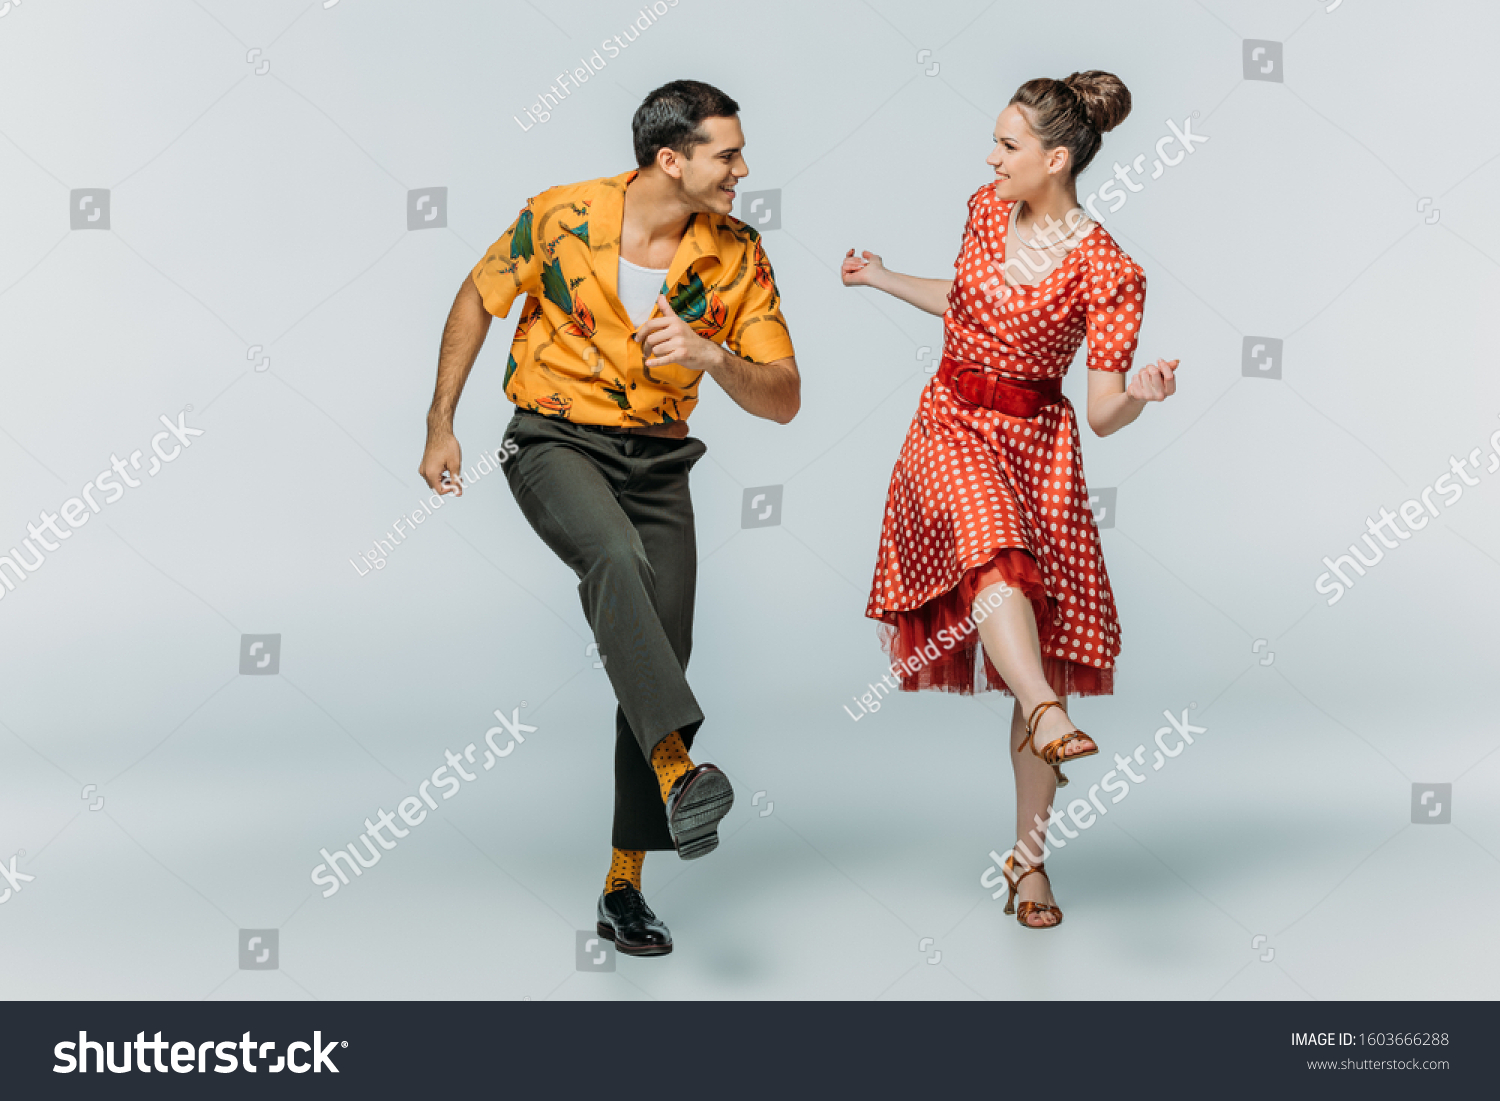 stylish dancers looking at each other while dancing boogie-woogie on grey background #1603666288